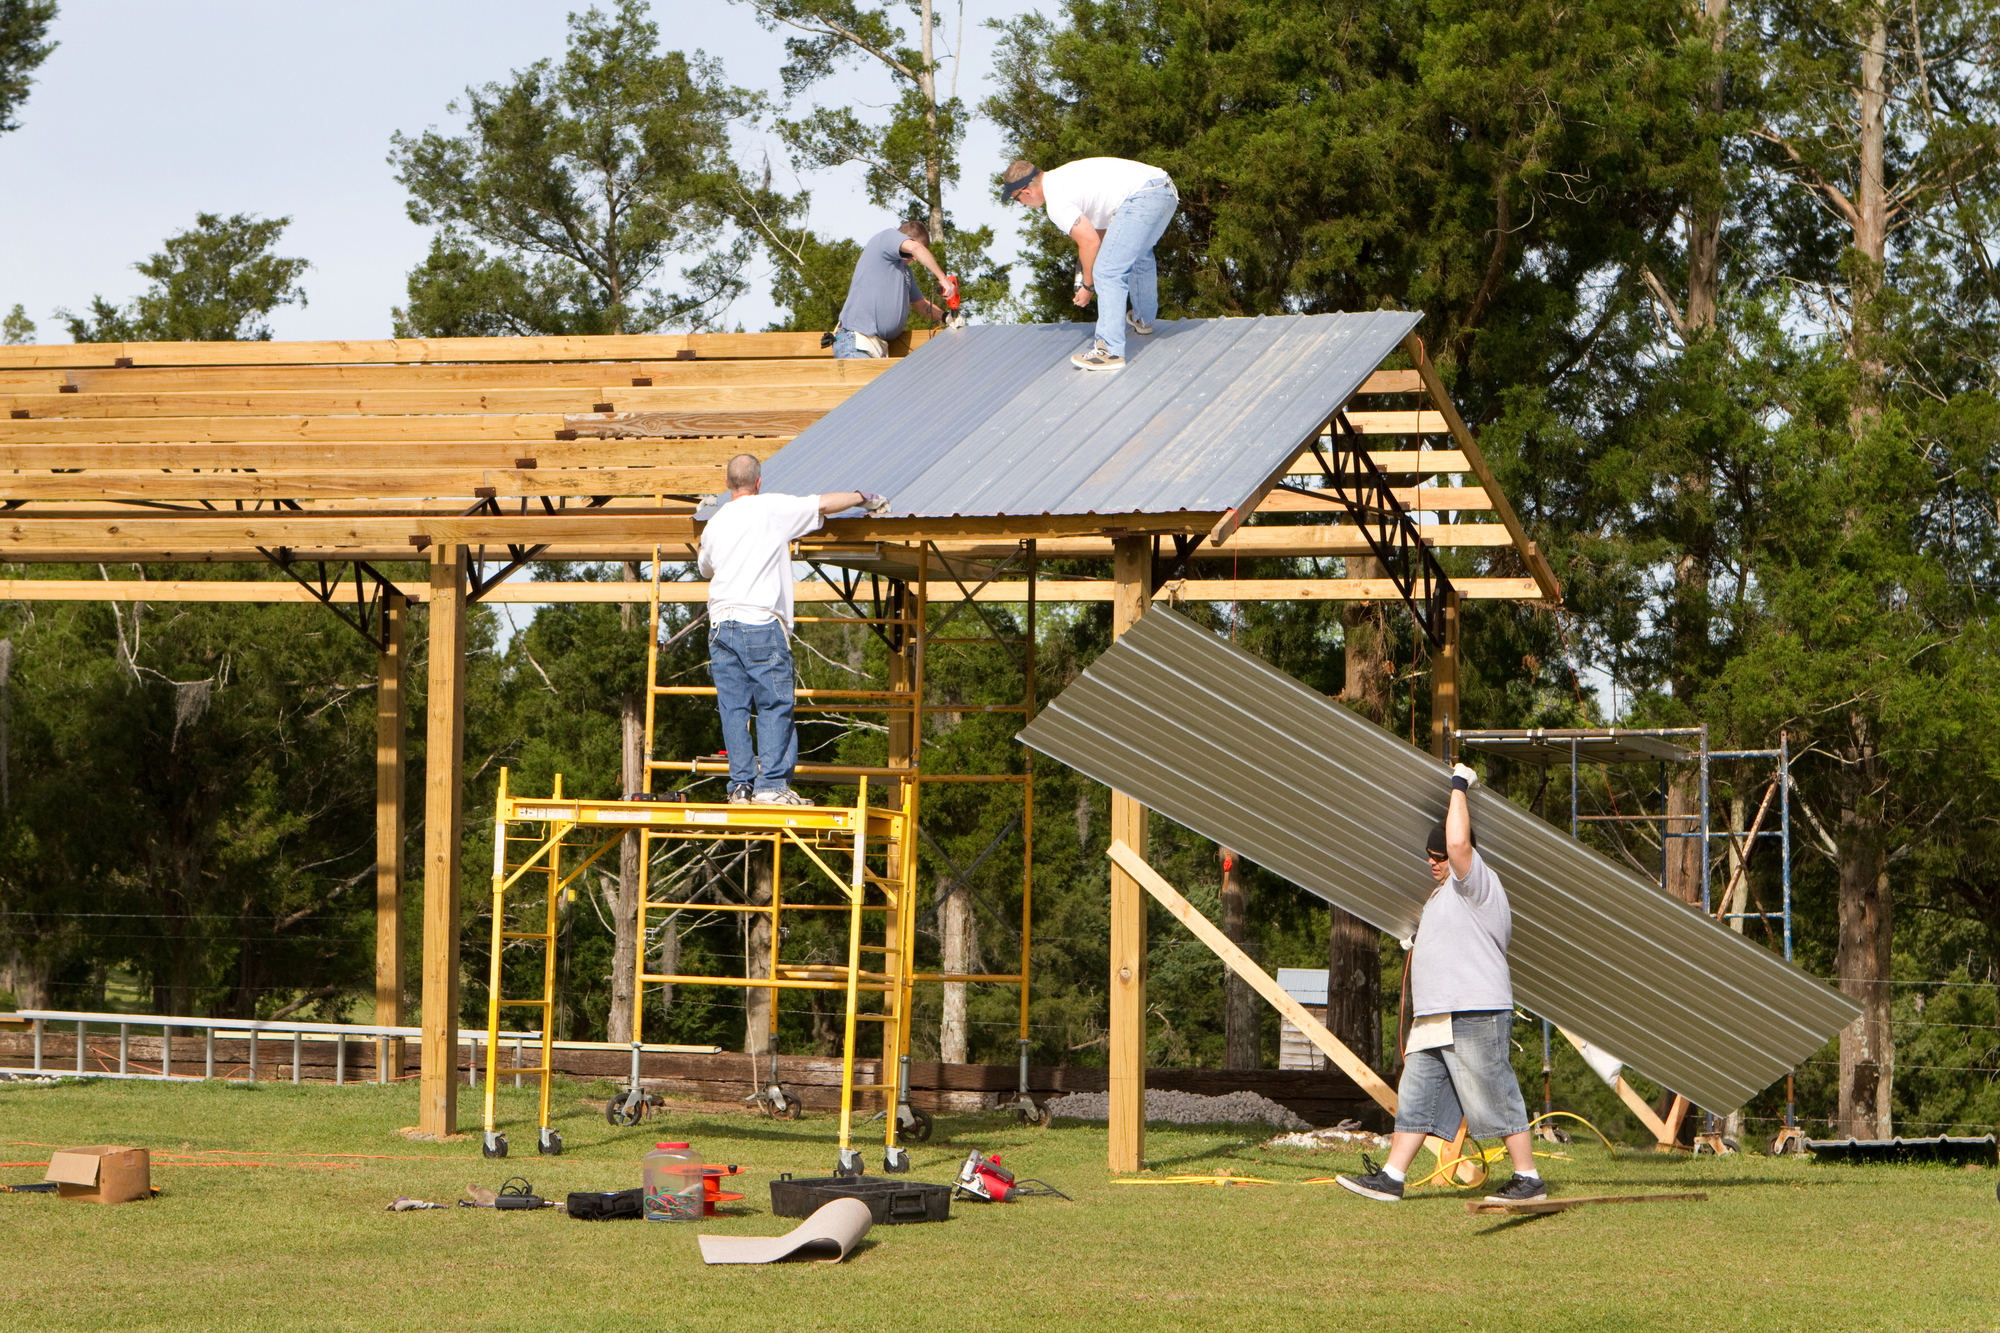 Metal roofing supplier provides 3 benefits of a pole barn for Barn construction kits